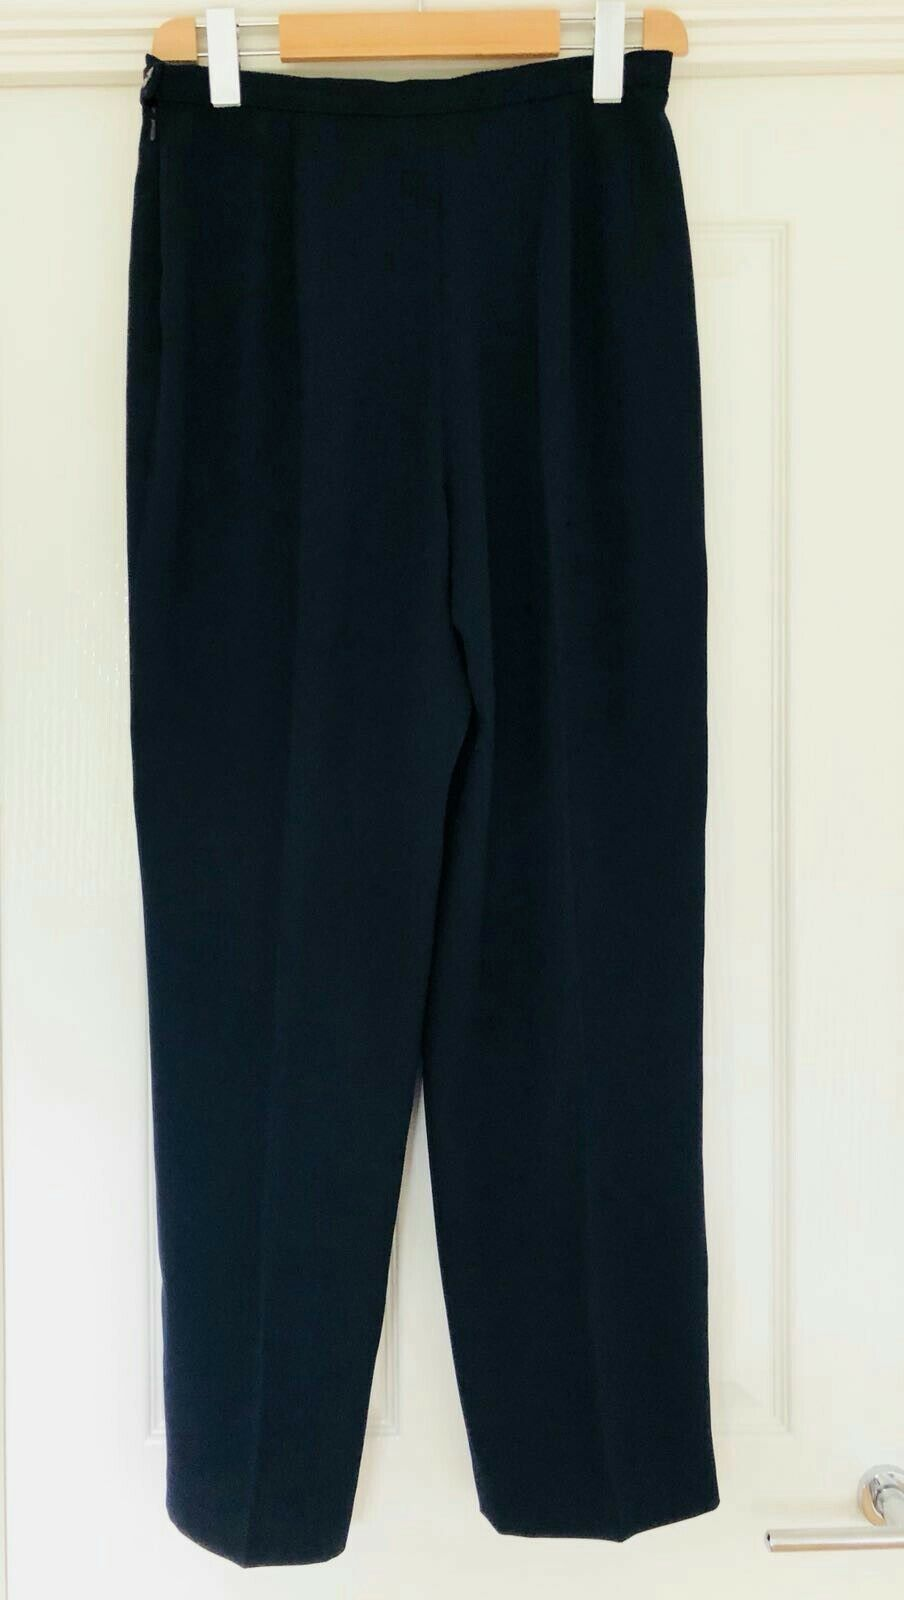 Jacques green smart navy three piece suit size size size 14 Pre owned 94f605